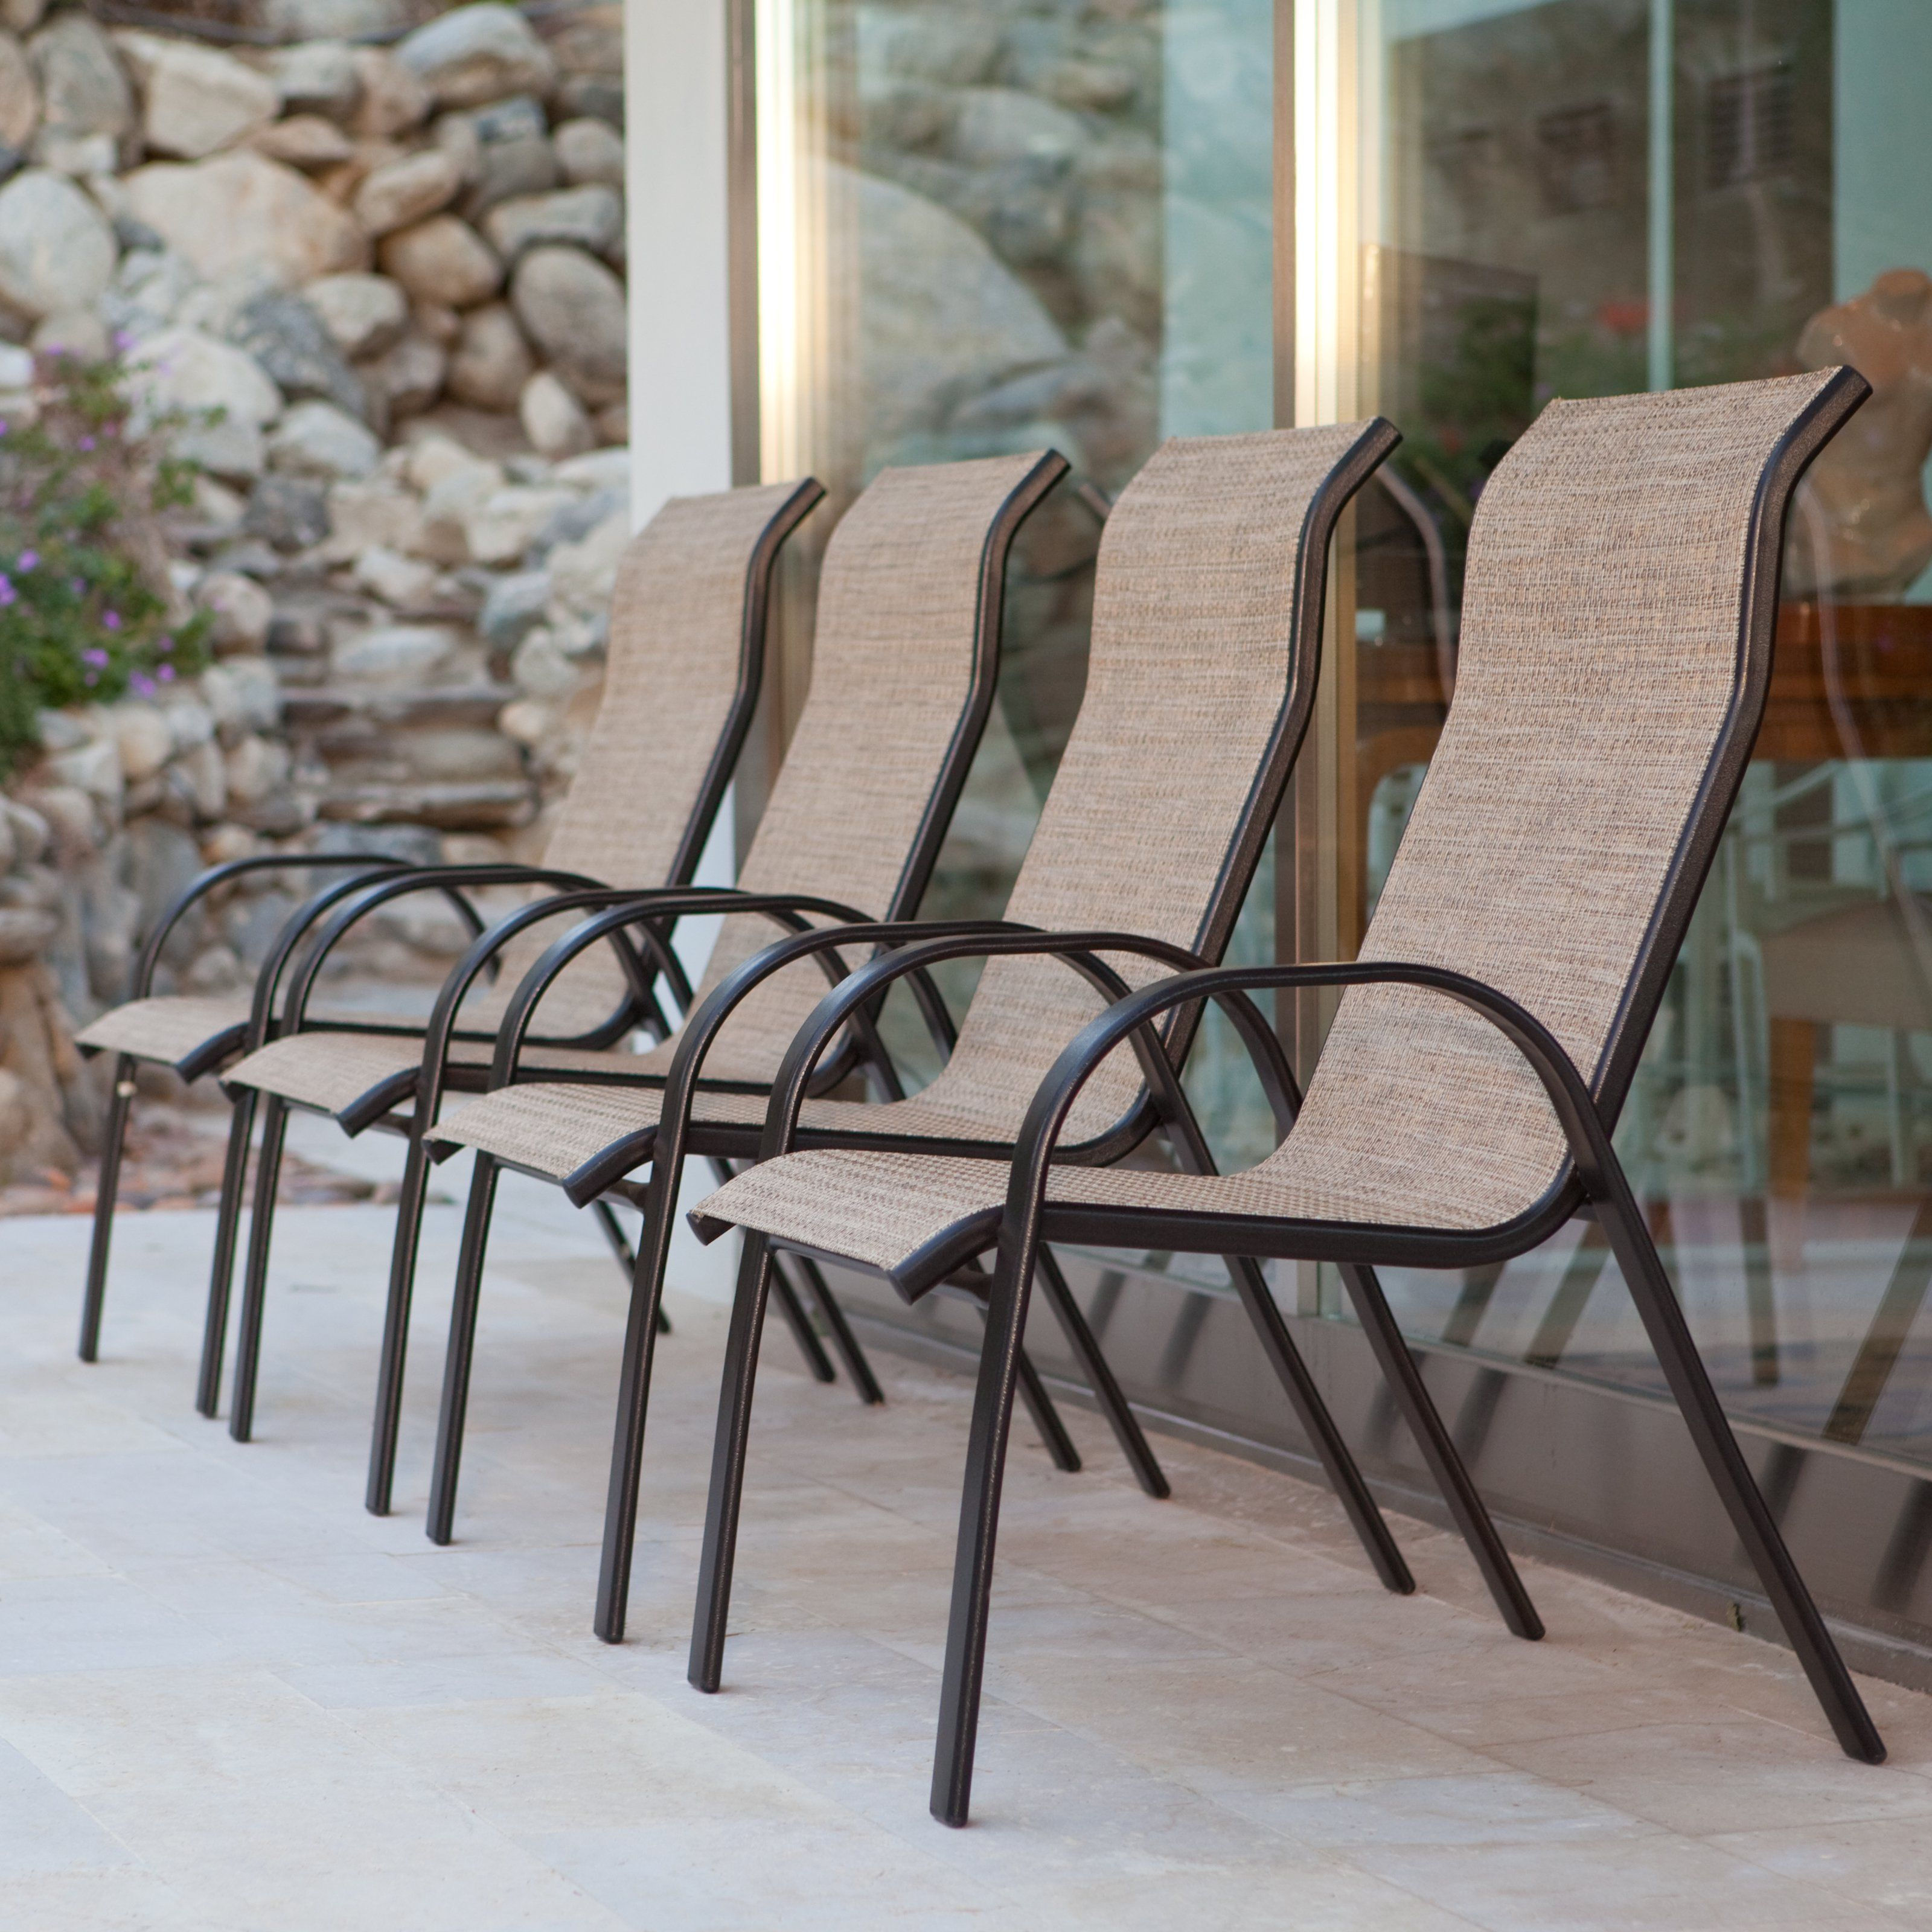 Summer Winds Patio Furniture Bedroom House Plans Small House Plans Patio Furniture